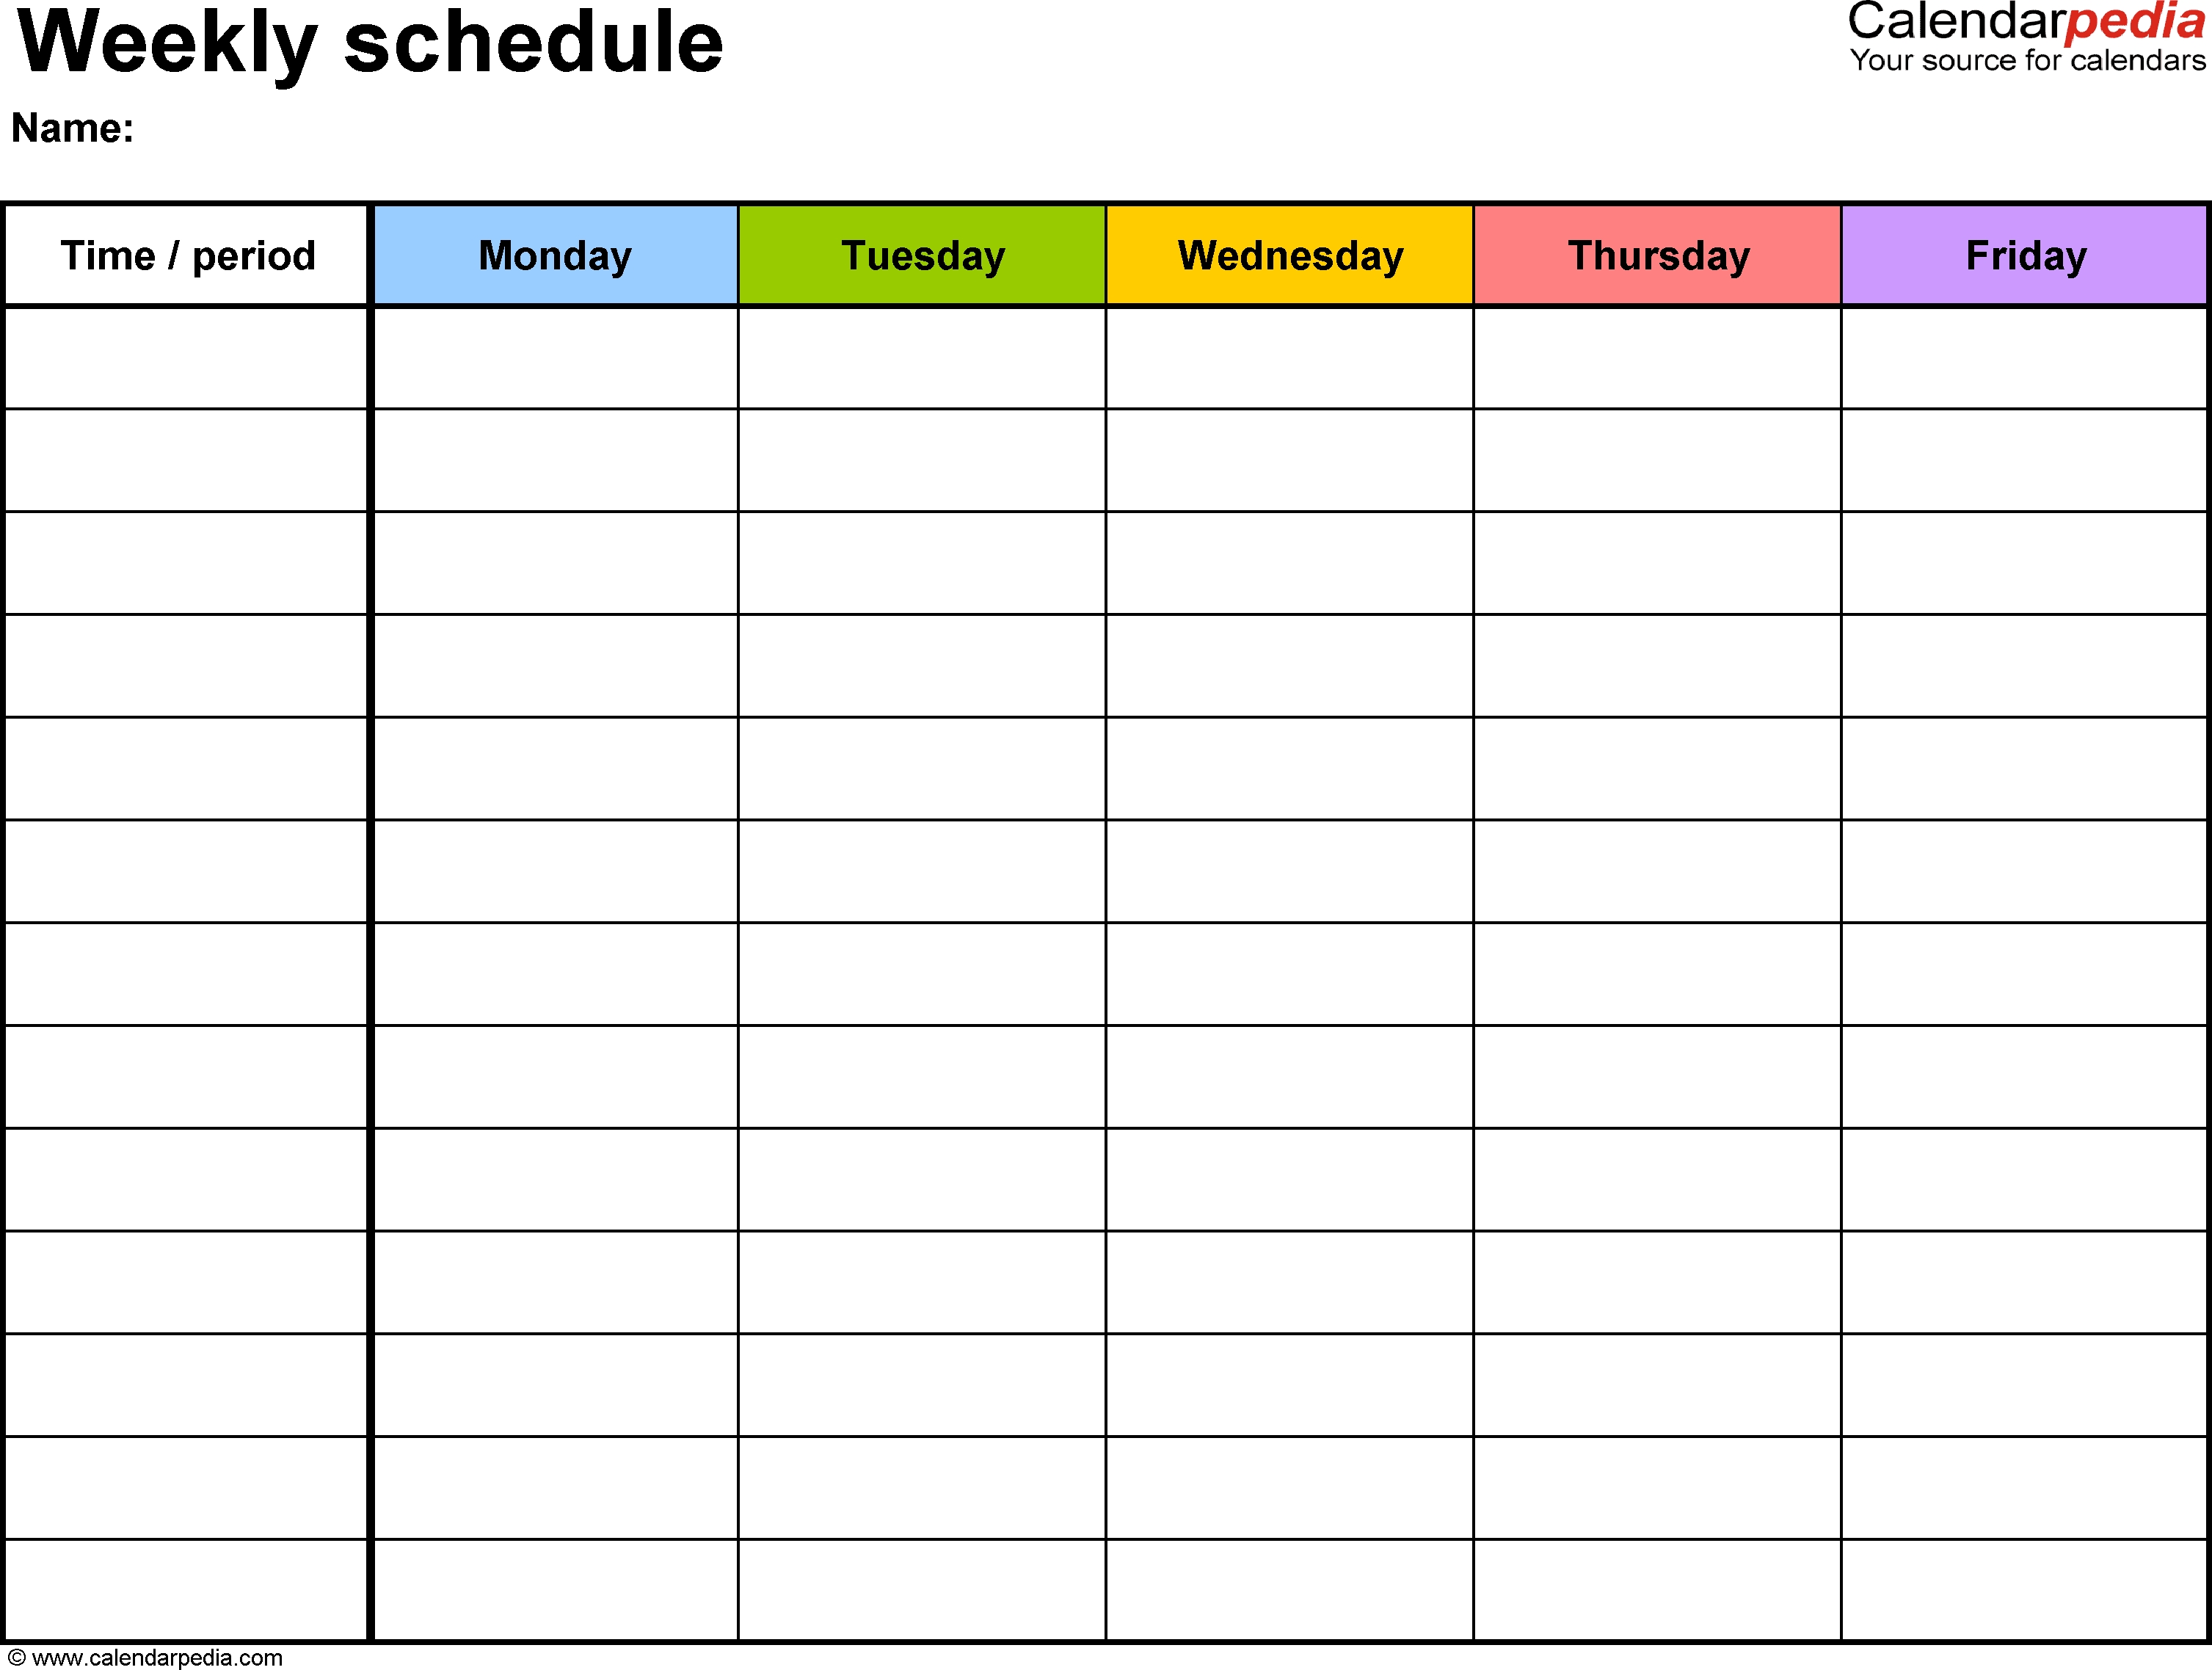 Free Weekly Schedule Templates For Pdf - 18 Templates intended for Free Printable Weekly Planner Calendars